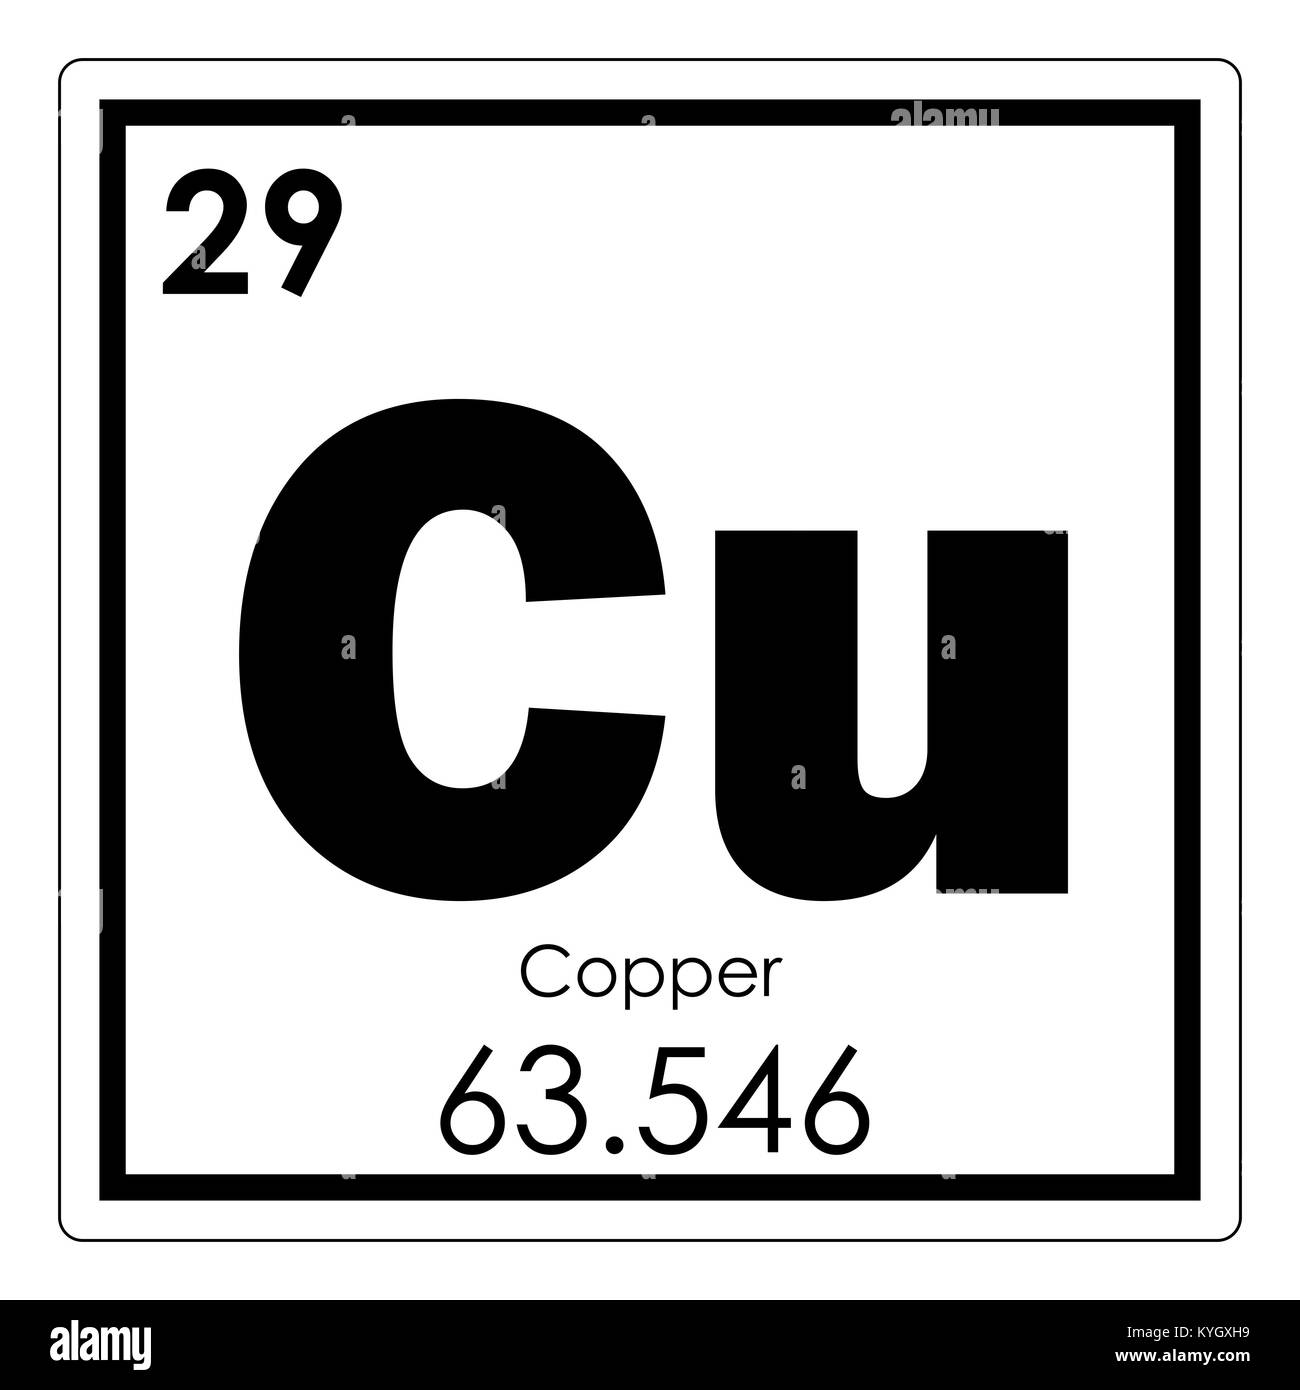 Copper chemical element periodic table science symbol stock photo copper chemical element periodic table science symbol urtaz Gallery